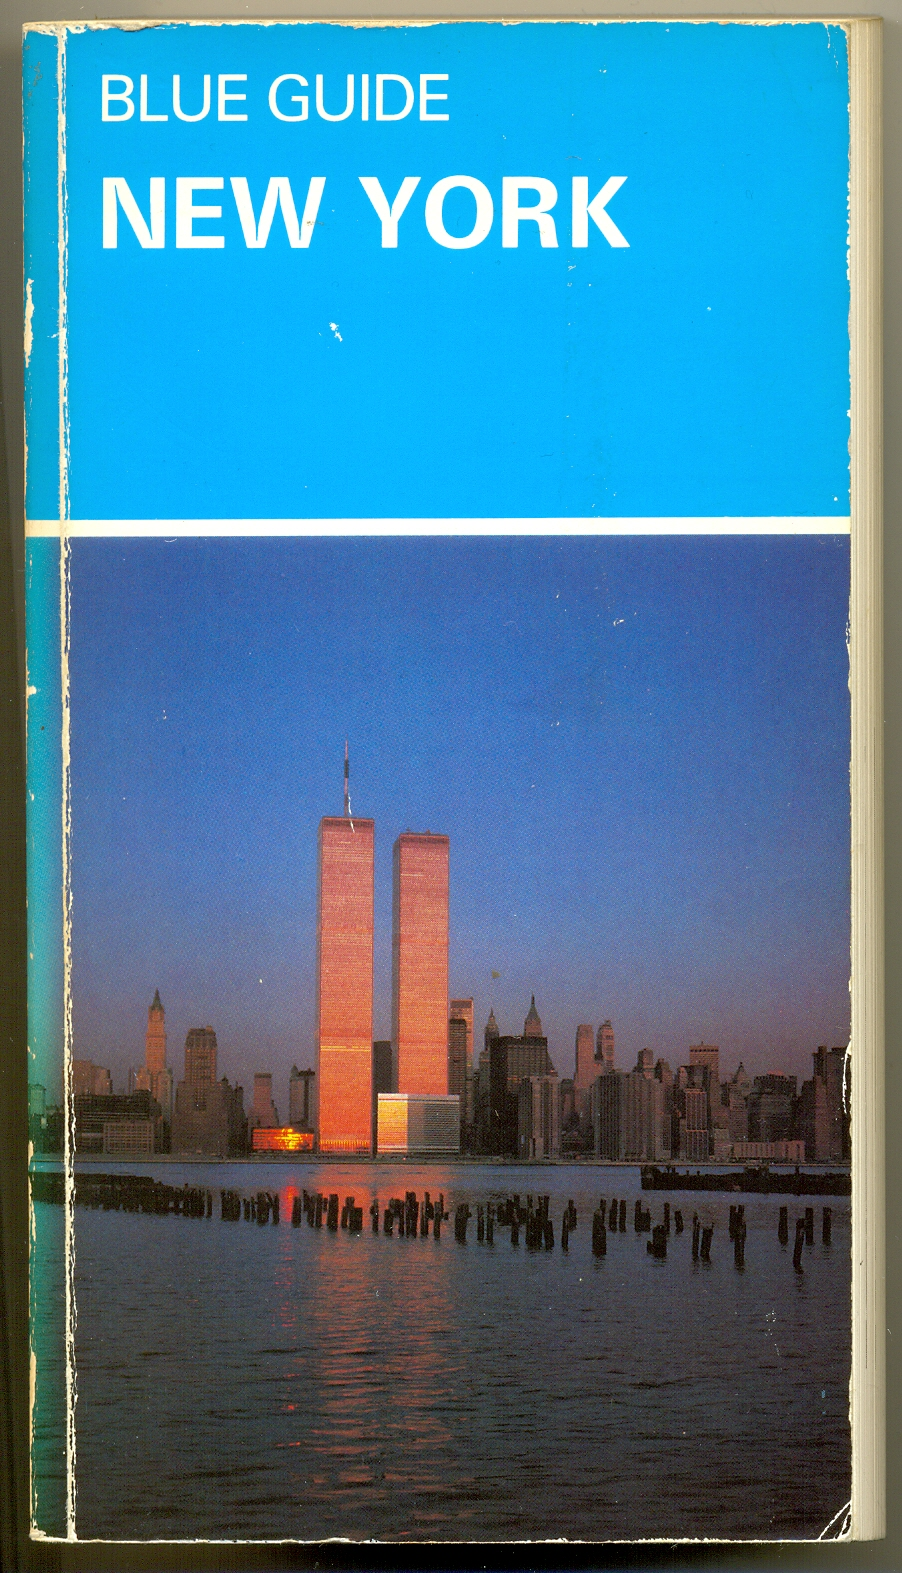 Blue Book Used Cars >> New York 1982 / 1983: Before Big Money Buried The City's Character